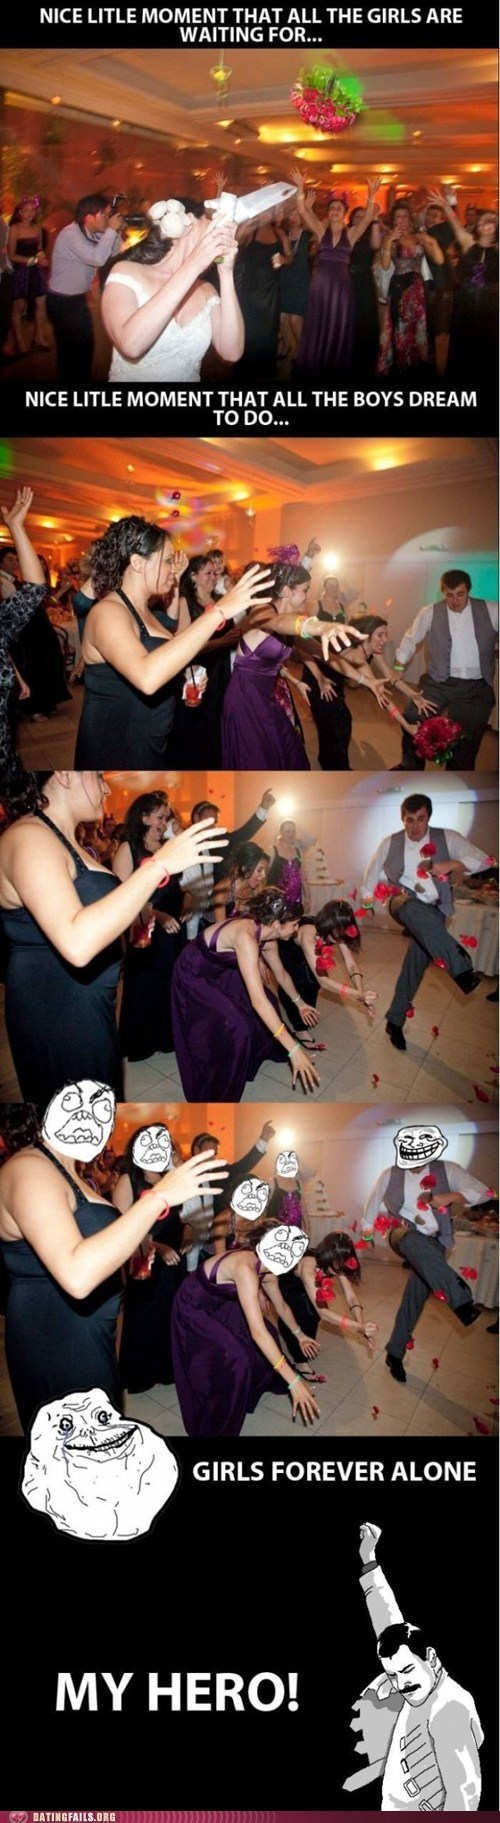 bouquet break cycle dating fails g rated kick rage comic wedding - 5783230464